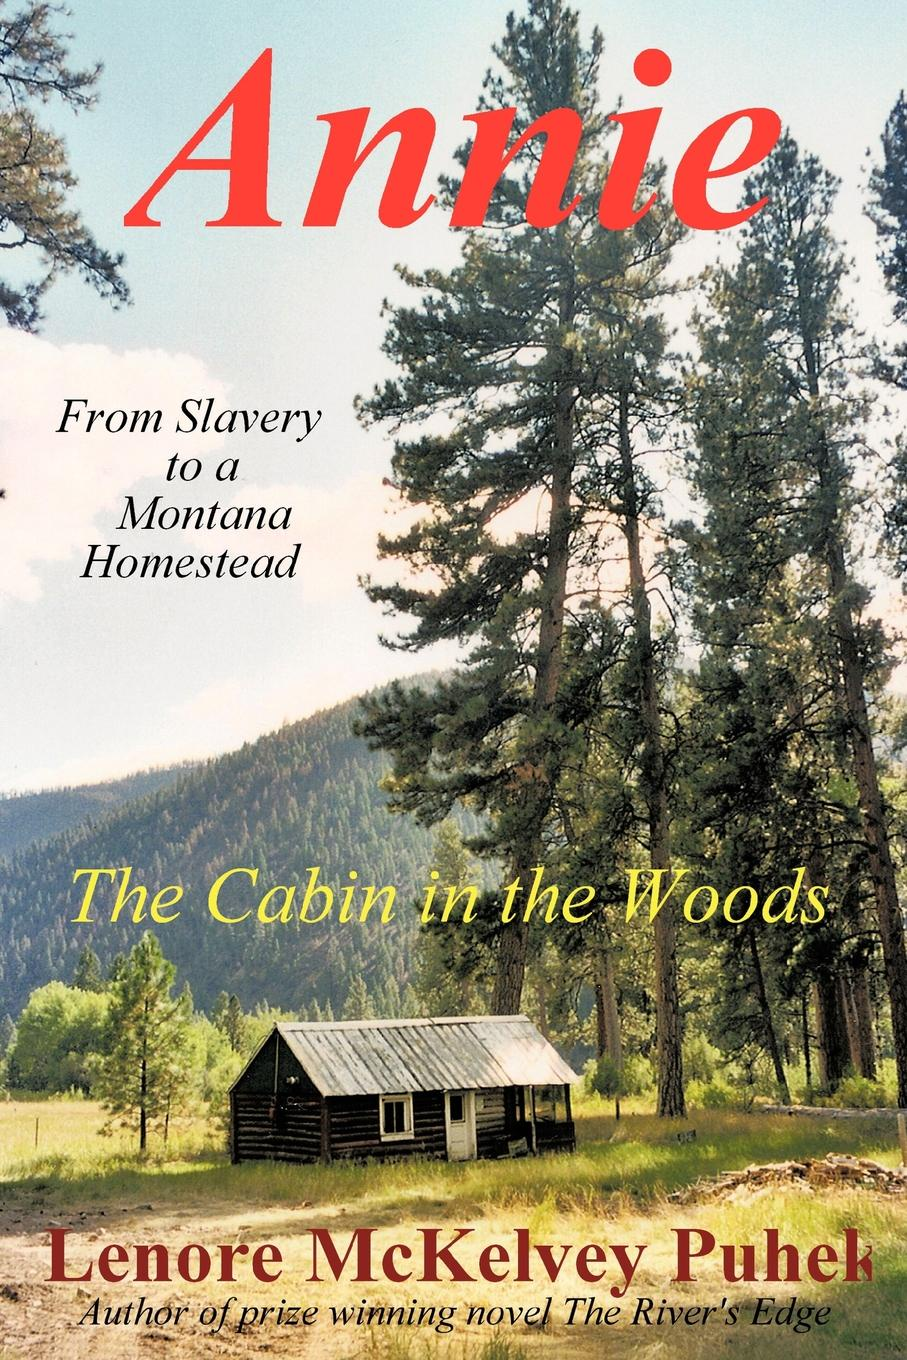 McKelvey Puhek Lenore McKelvey Puhek Annie. The Cabin in the Woods annie west imprisoned by a vow